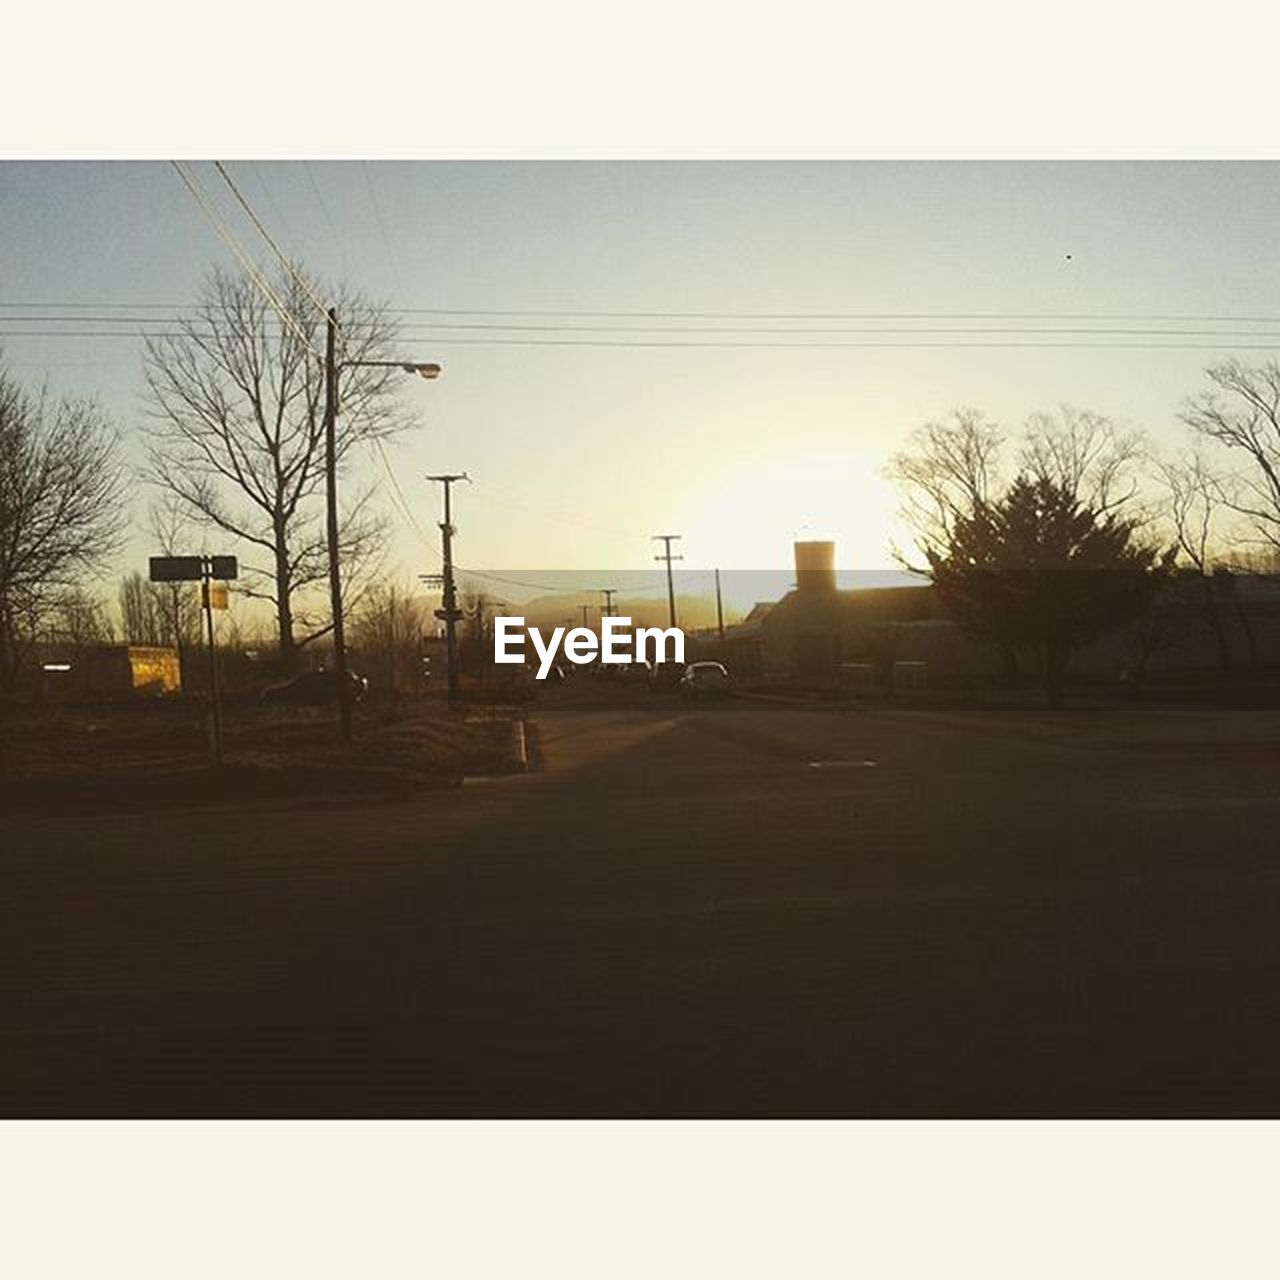 tree, no people, car, transportation, road, bare tree, outdoors, sunset, clear sky, nature, sky, electricity pylon, day, city